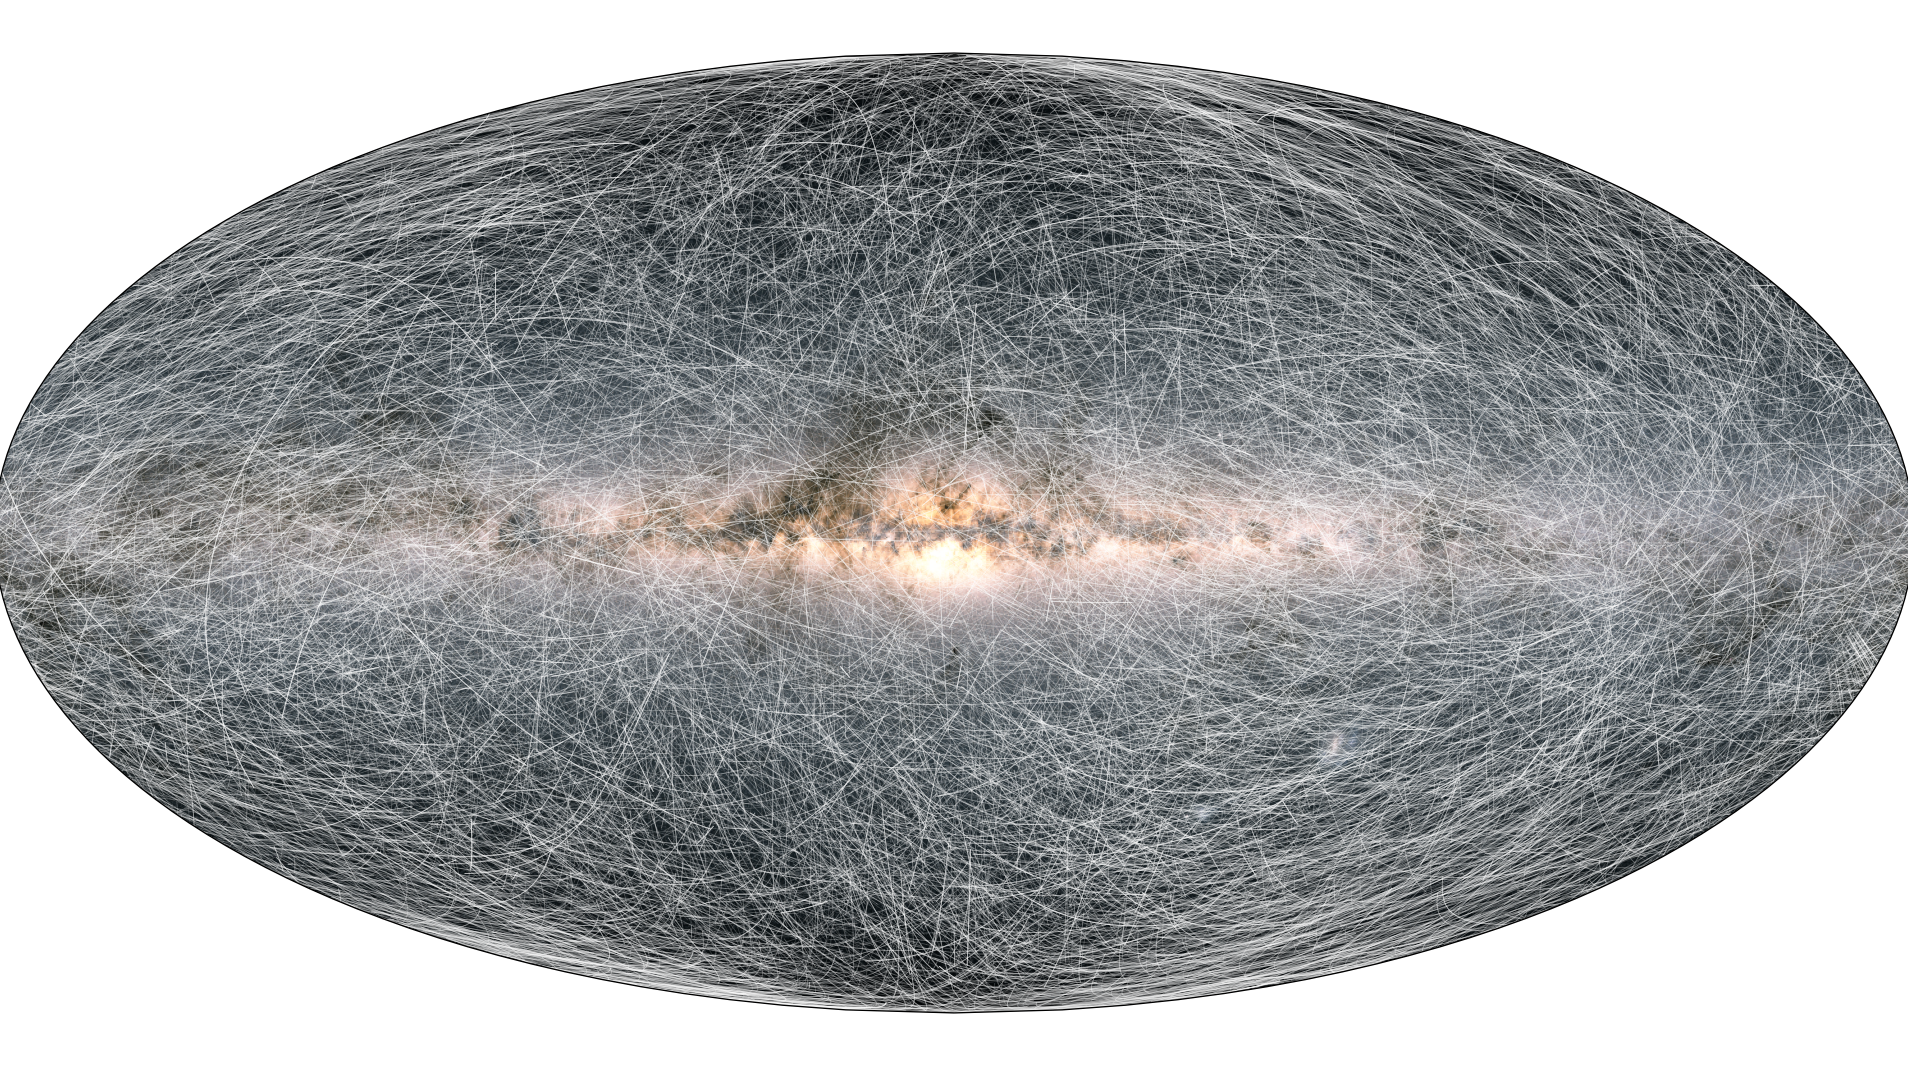 3D Map Shows the Milky Way Galaxy in Unprecedented Detail